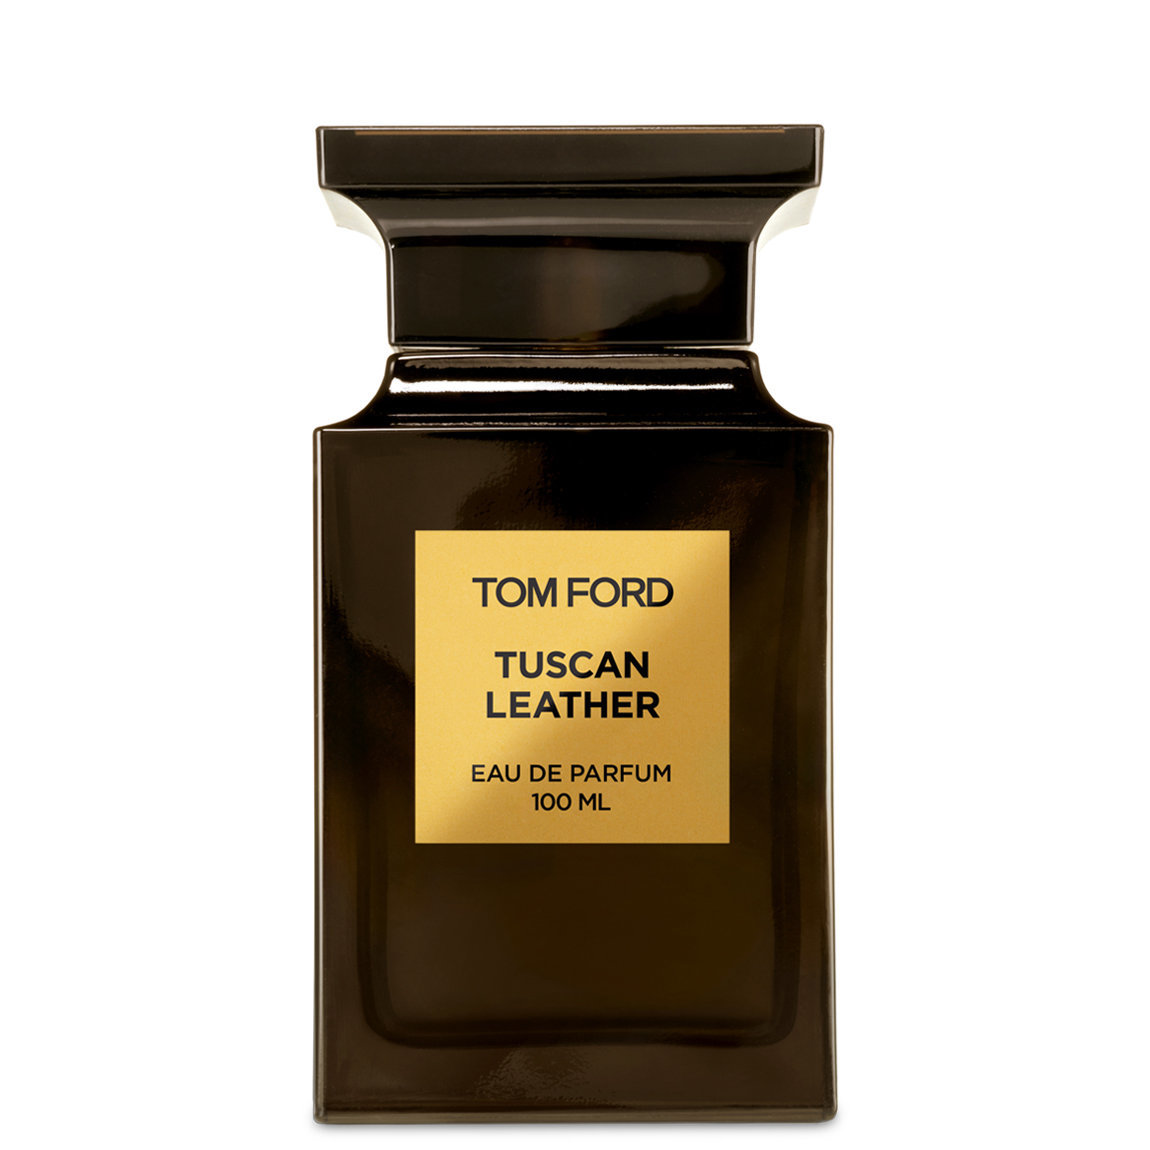 TOM FORD Tuscan Leather 100 ml alternative view 1 - product swatch.